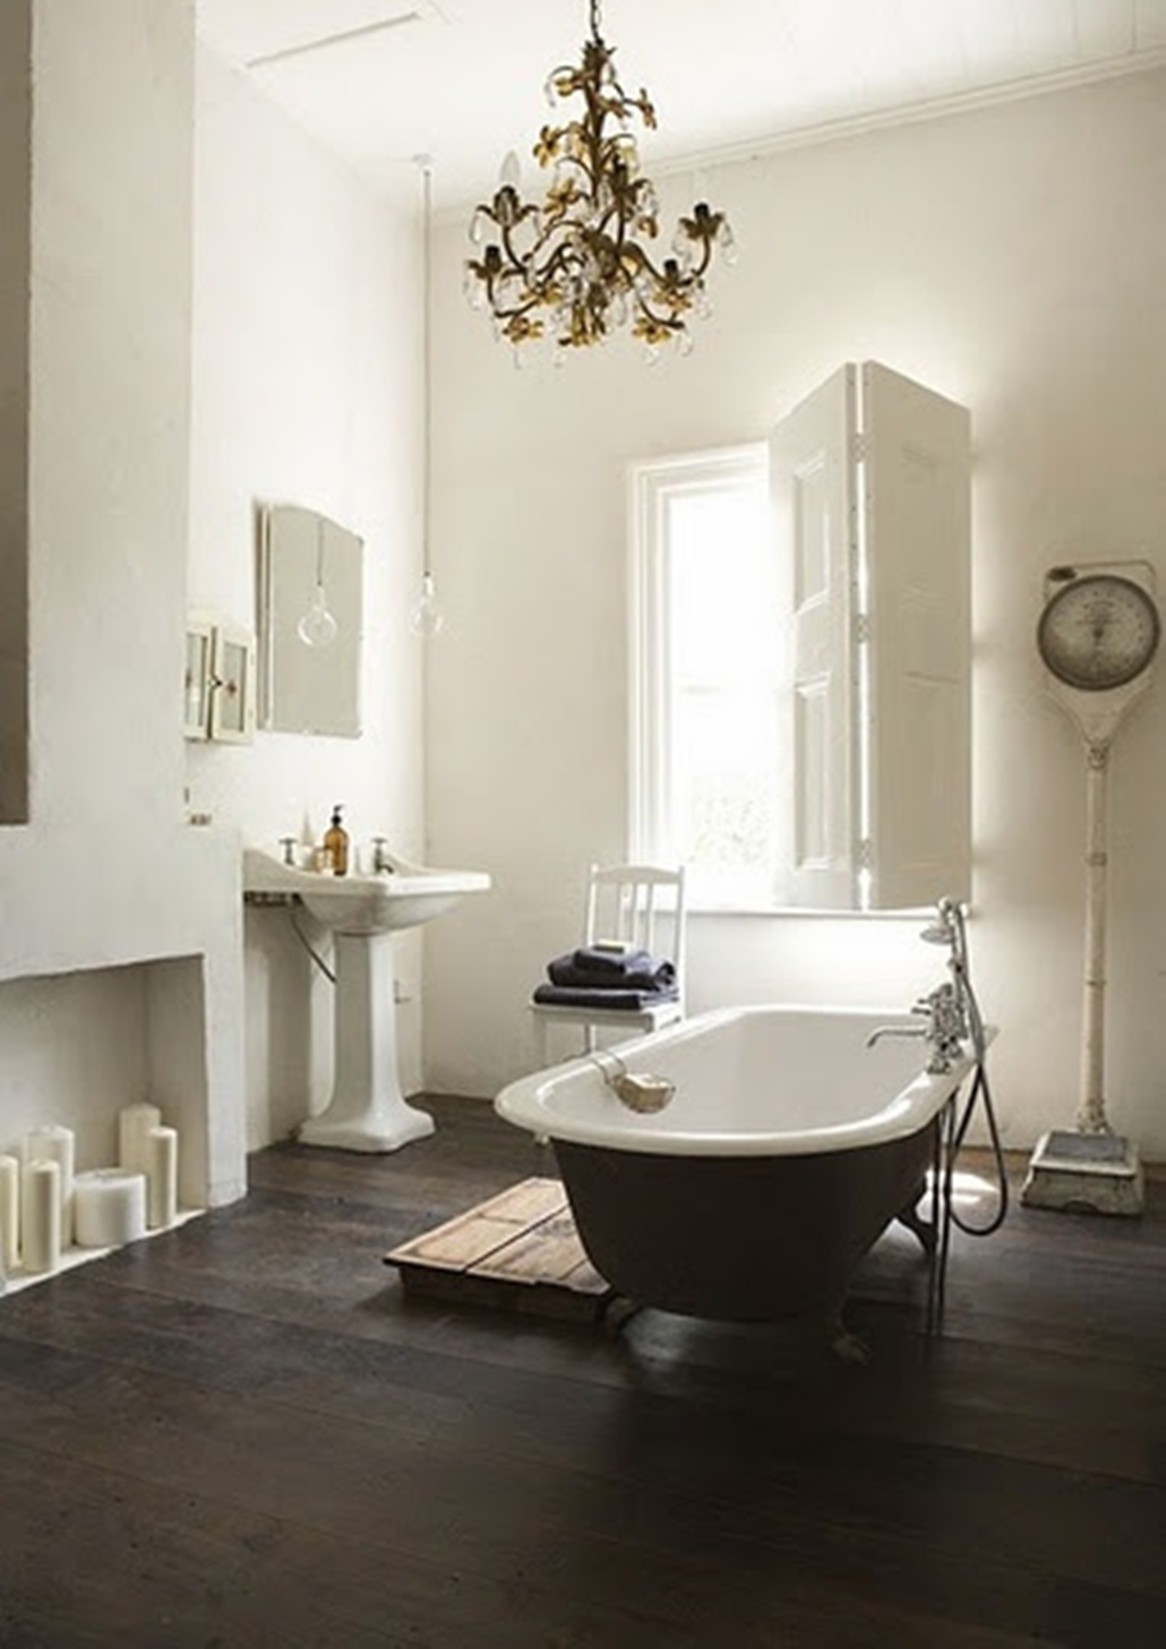 interior-ideas-furniture-bathroom-vintage-clawfoot-tub-and-in-victorian-cottage-design-with-window-doors-plus-pedestal-sink-also-fireplace-and-wood-floor-also-s-also-acrylic-tub-elegant-clawfoot-bath